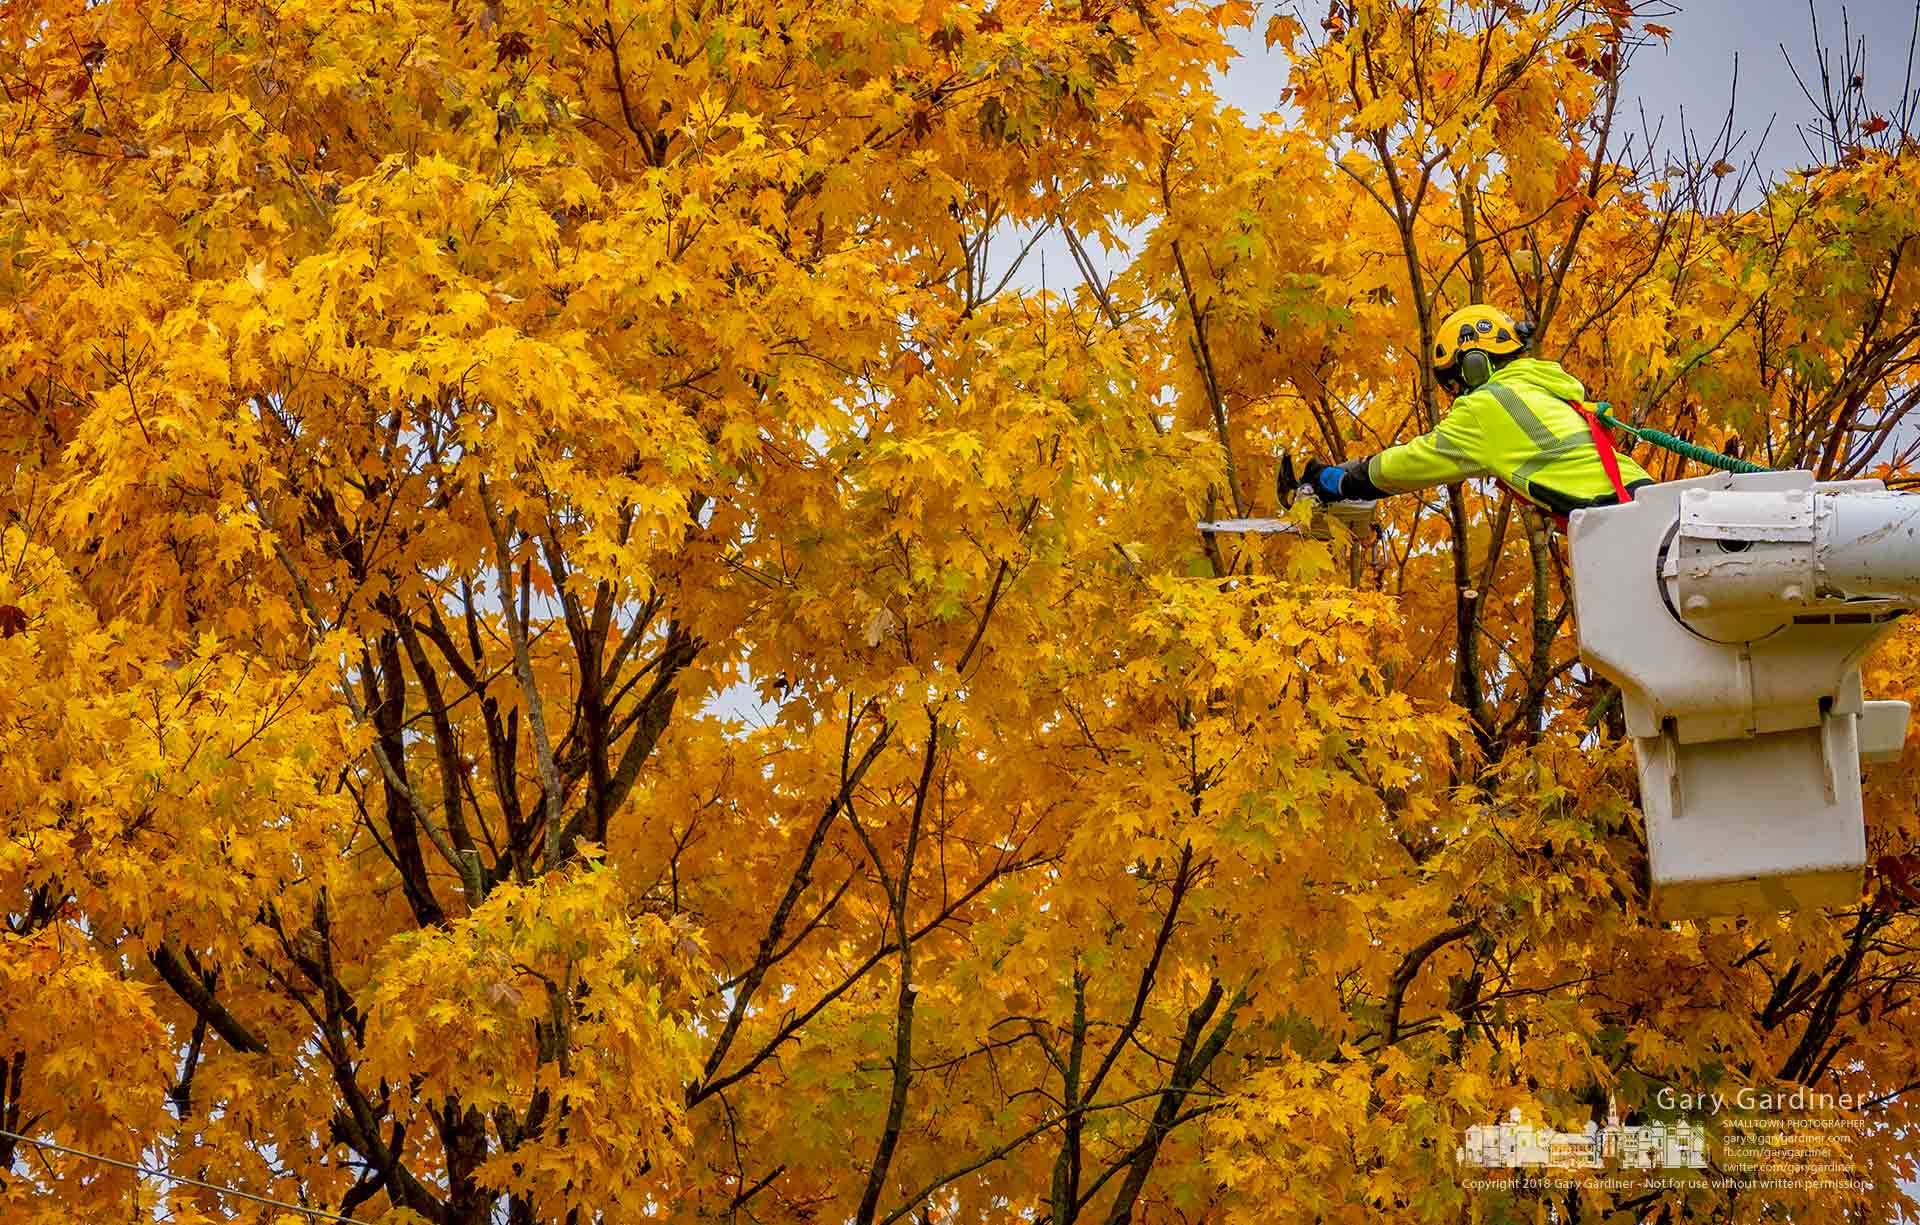 A Westerville Electric Division linesman clears gold-colored maple tree limbs hanging near power lines on Orchard Lane. My Final Photo for Nov. 2, 2018.